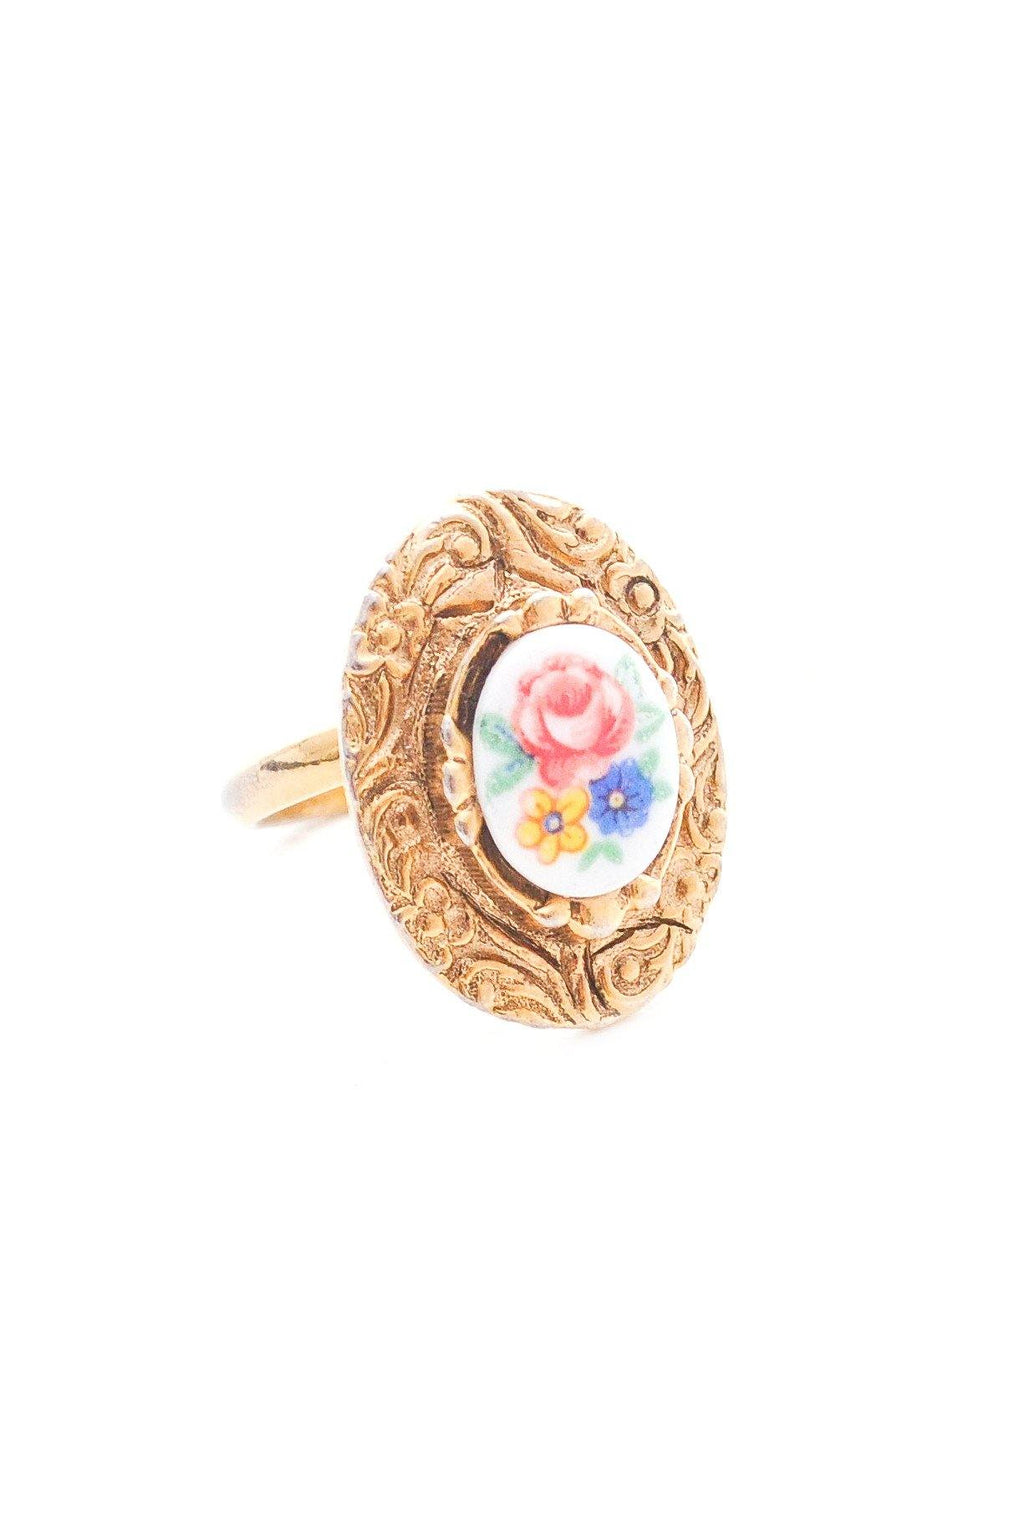 Adjustable Floral Scroll Ring